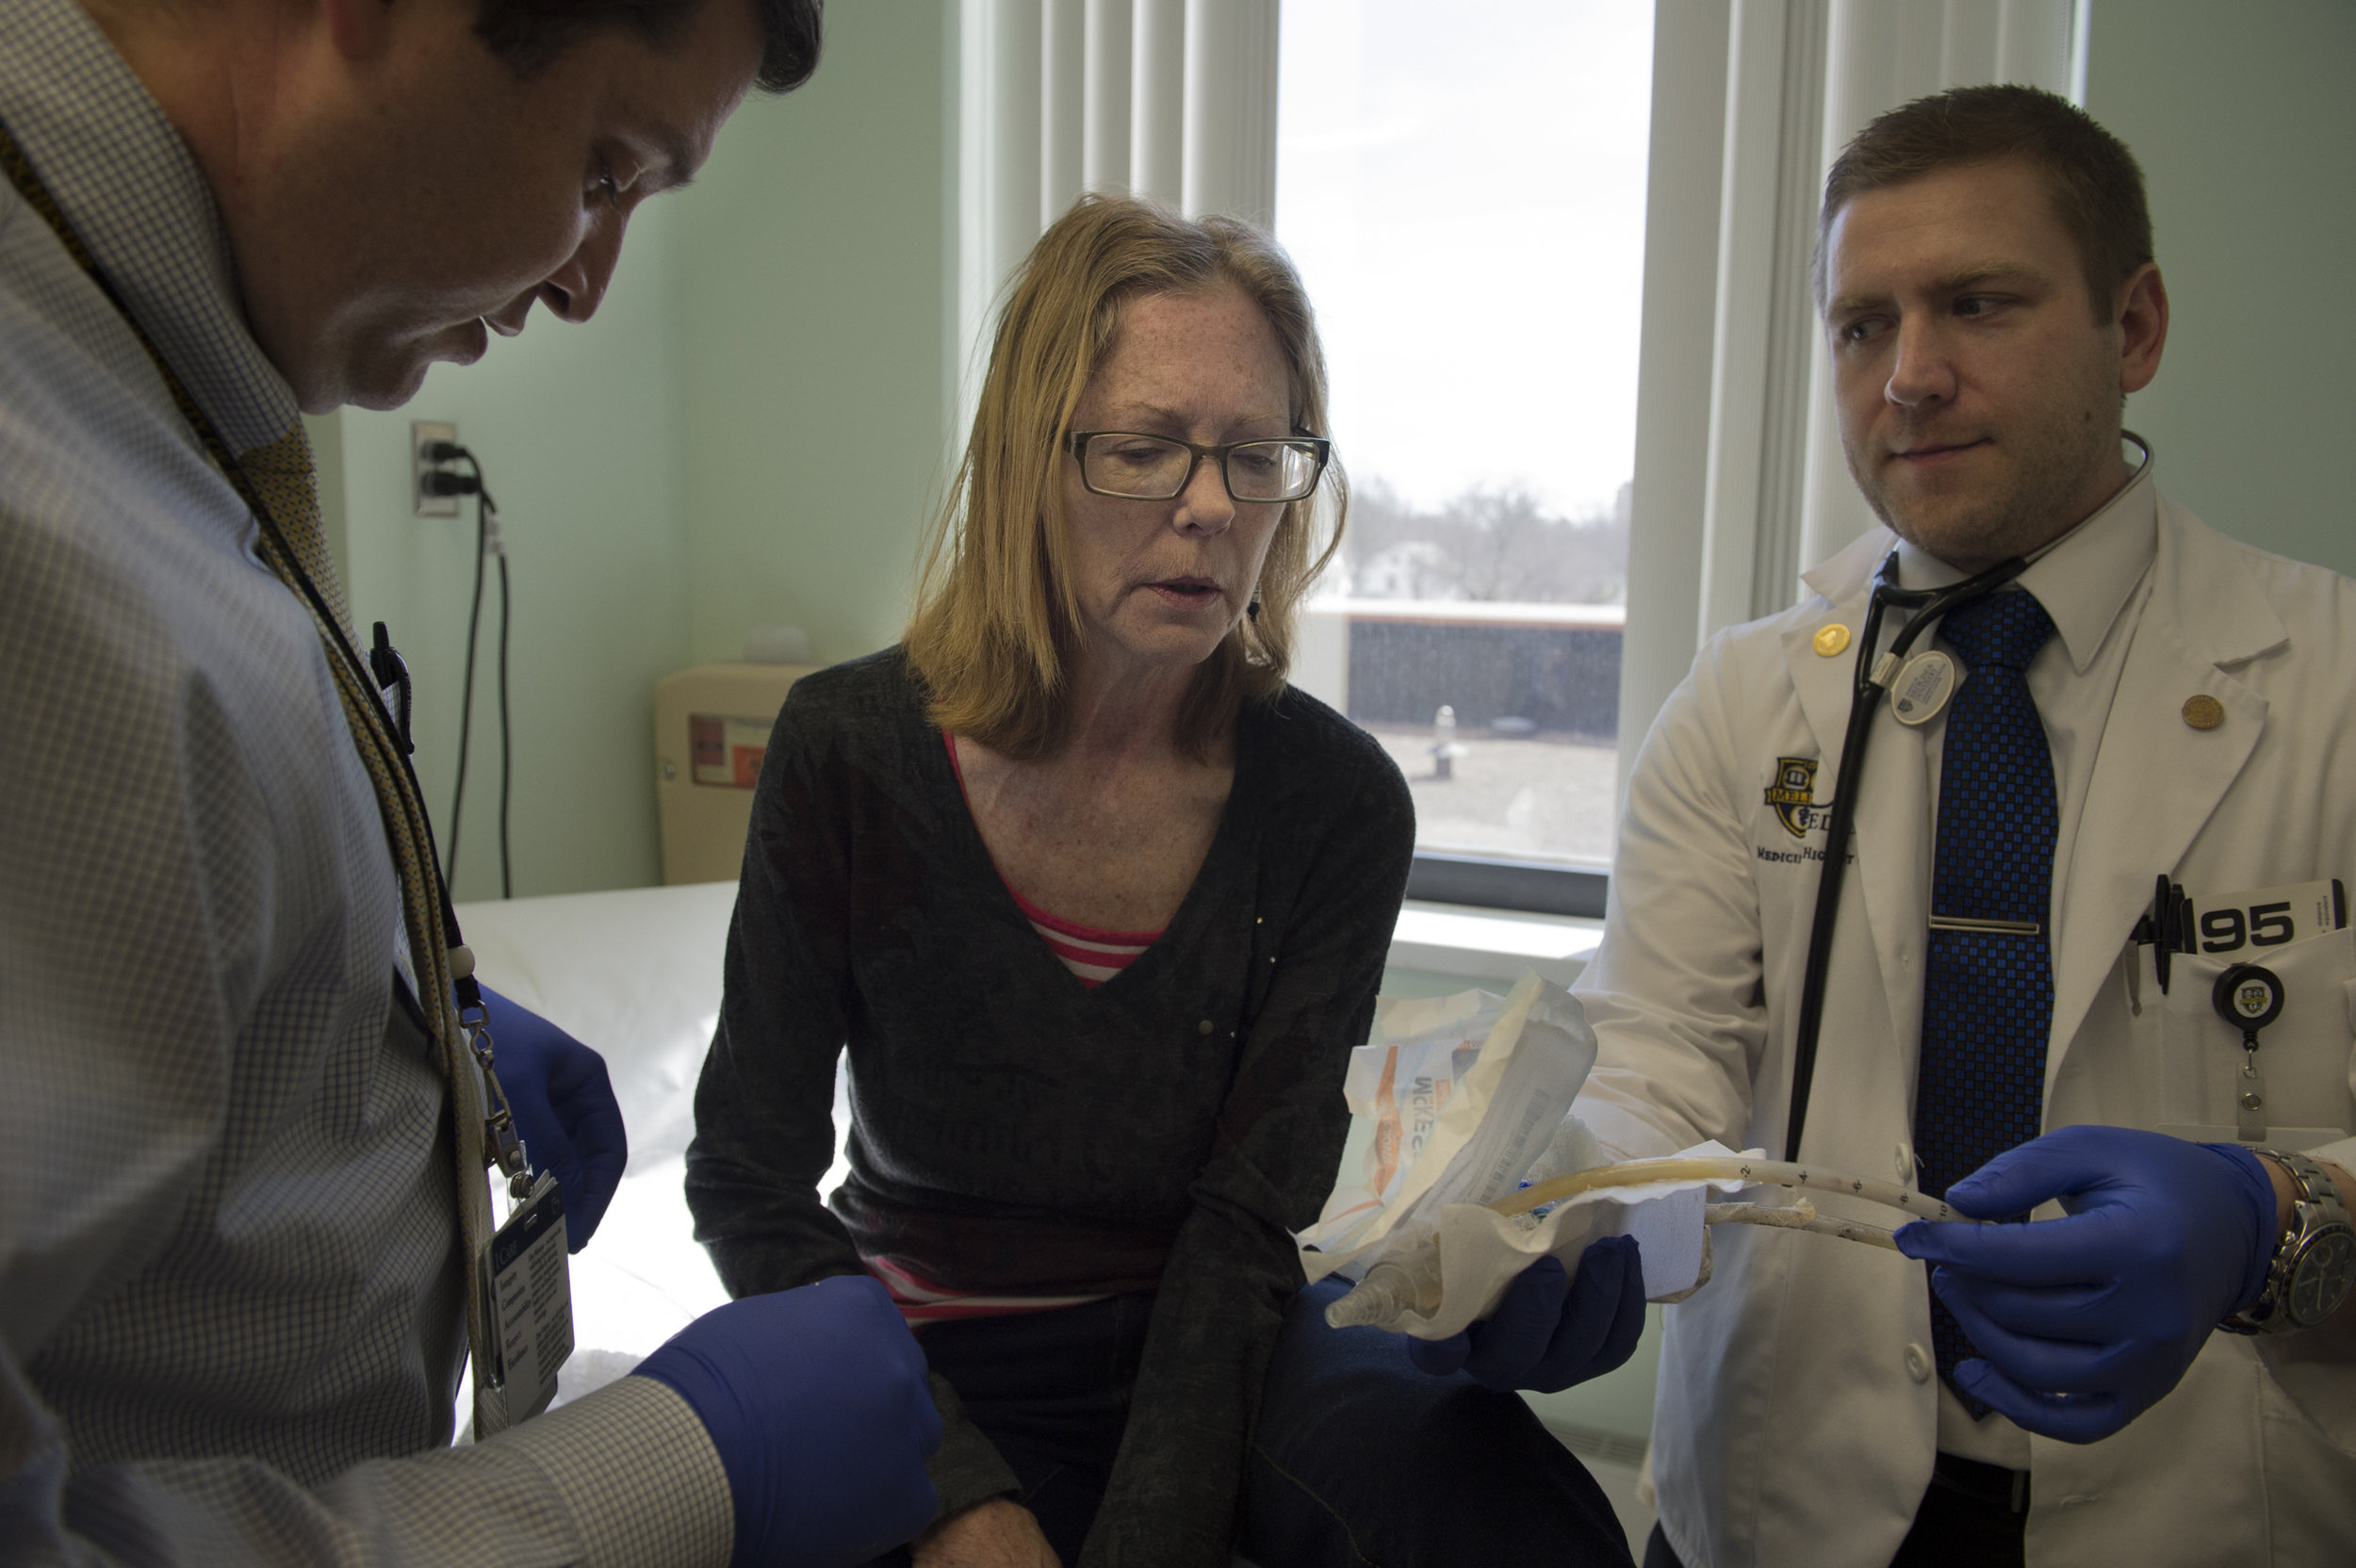 Carol is shown the chest tube that was inserted for lung drainage after a biopsy by her surgeon after it is removed.